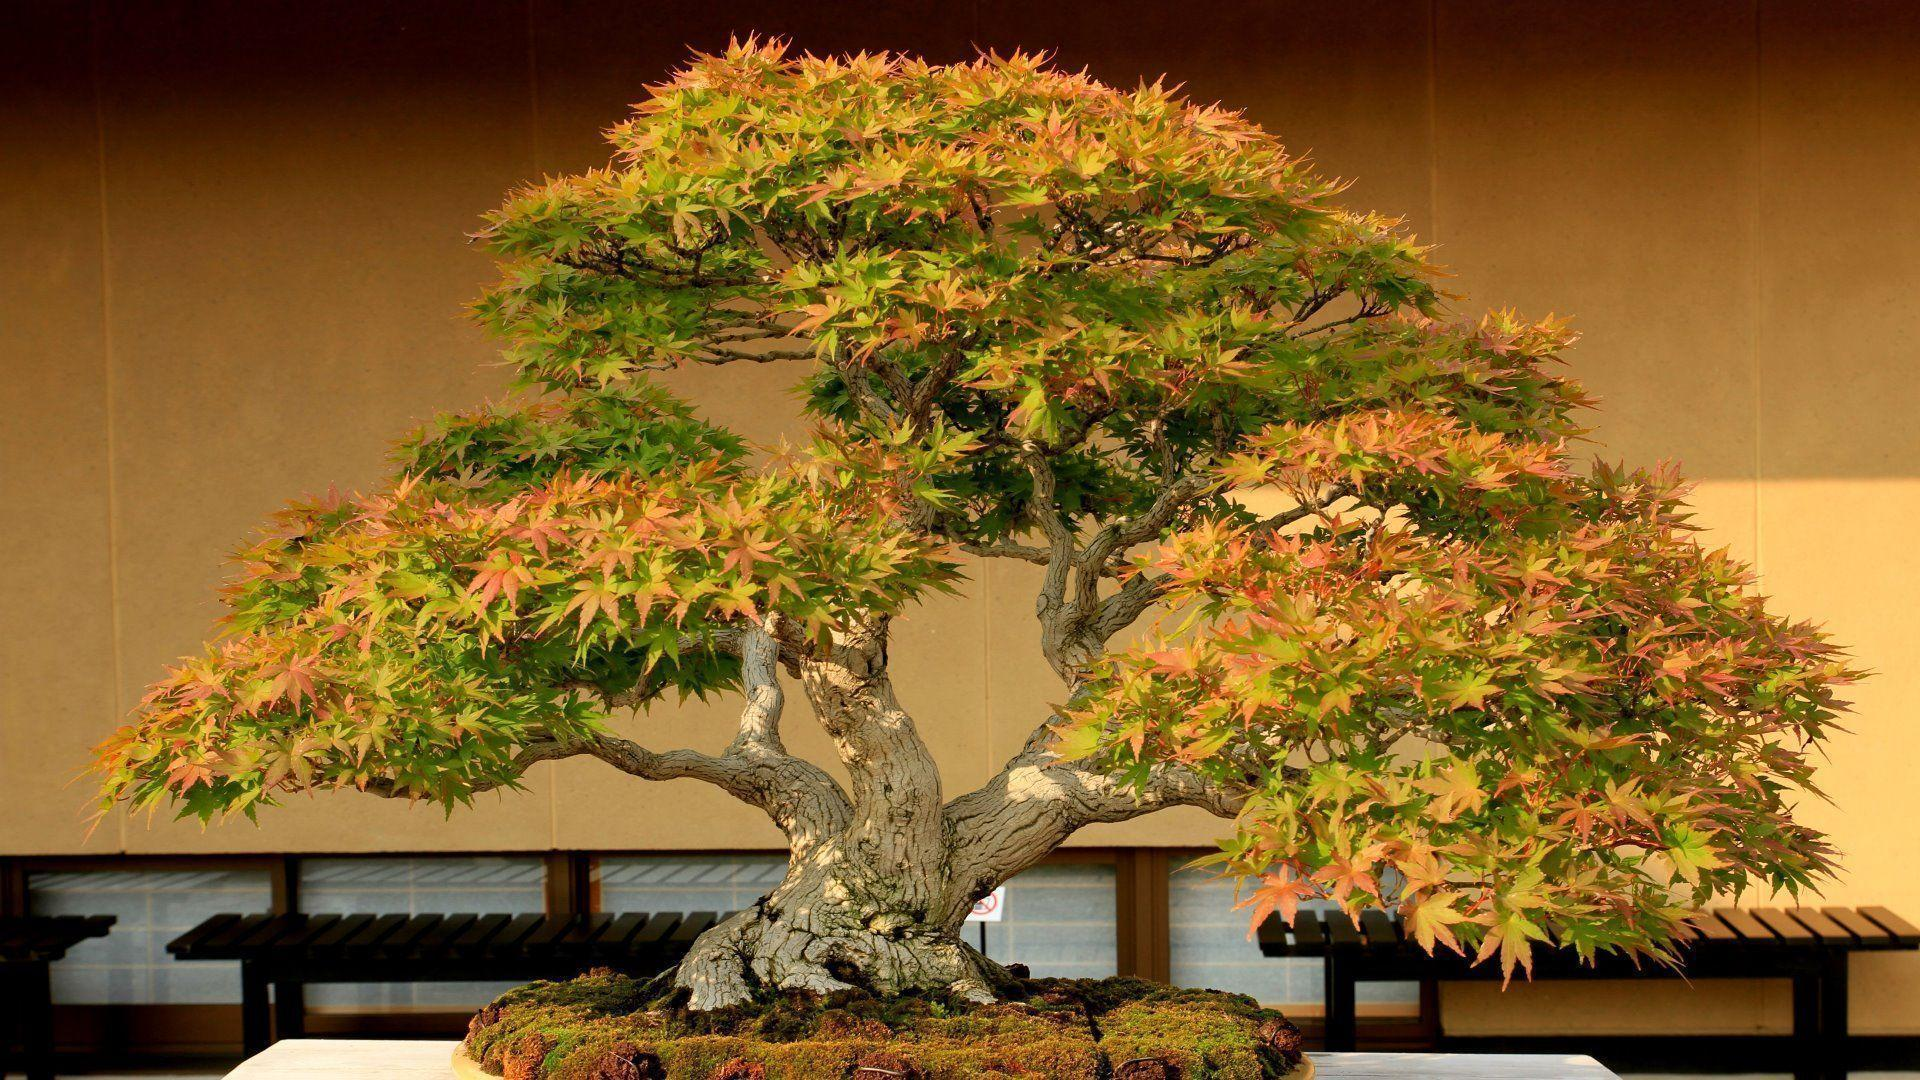 Bonsai Tree HD Wallpapers Photos Images